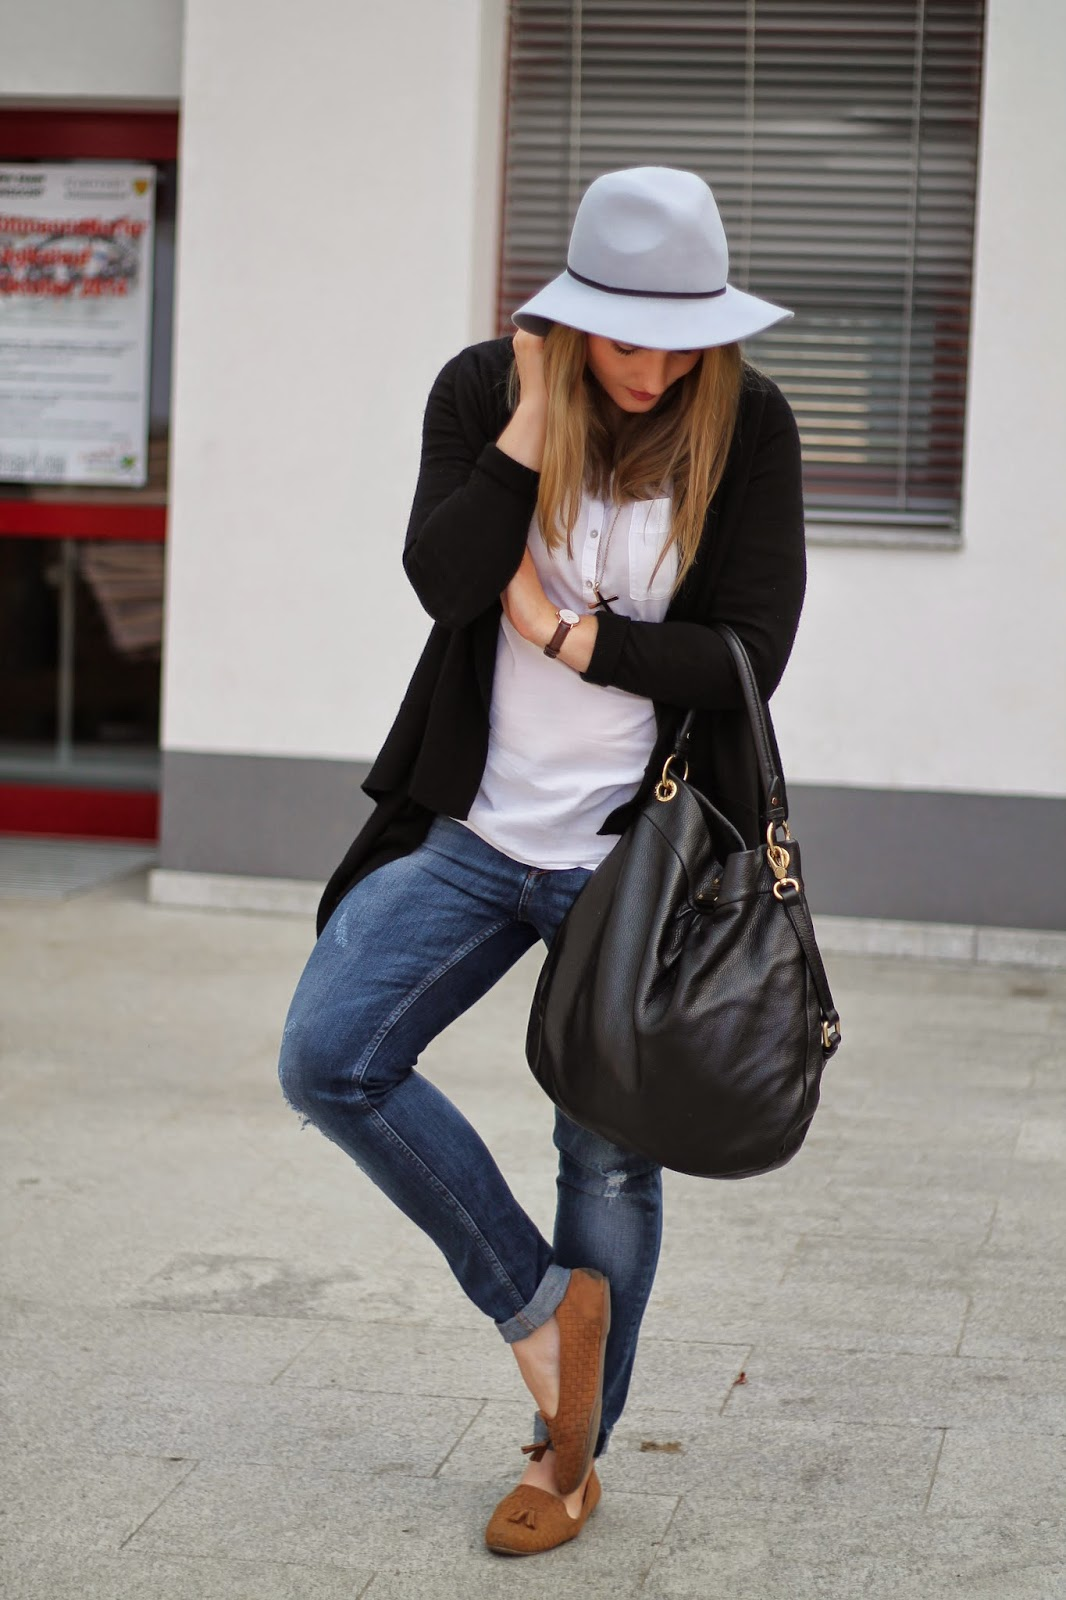 Fashionblogger Austria / Österreich / Deutsch / German / Kärnten / Carinthia / Klagenfurt / Köttmannsdorf / Spring Look / Classy / Edgy / Autumn / Autumn Style 2014 / Autumn Look / Fashionista Look / Clean Look / Neutral Colors / Grey Hat Grauer Hut Asos / Marc by Marc Jacobs Hilier hobo bag black with golden Hardware Schwarz / White Blouse Esprit Weiße Bluse / Schwarzer Cardigan Black Cardigan H&M / Blaue Boyfriend Jeans Ann Christin / Beige Loafers Forever 21 / Danie Wellington St. Andreas Watch /